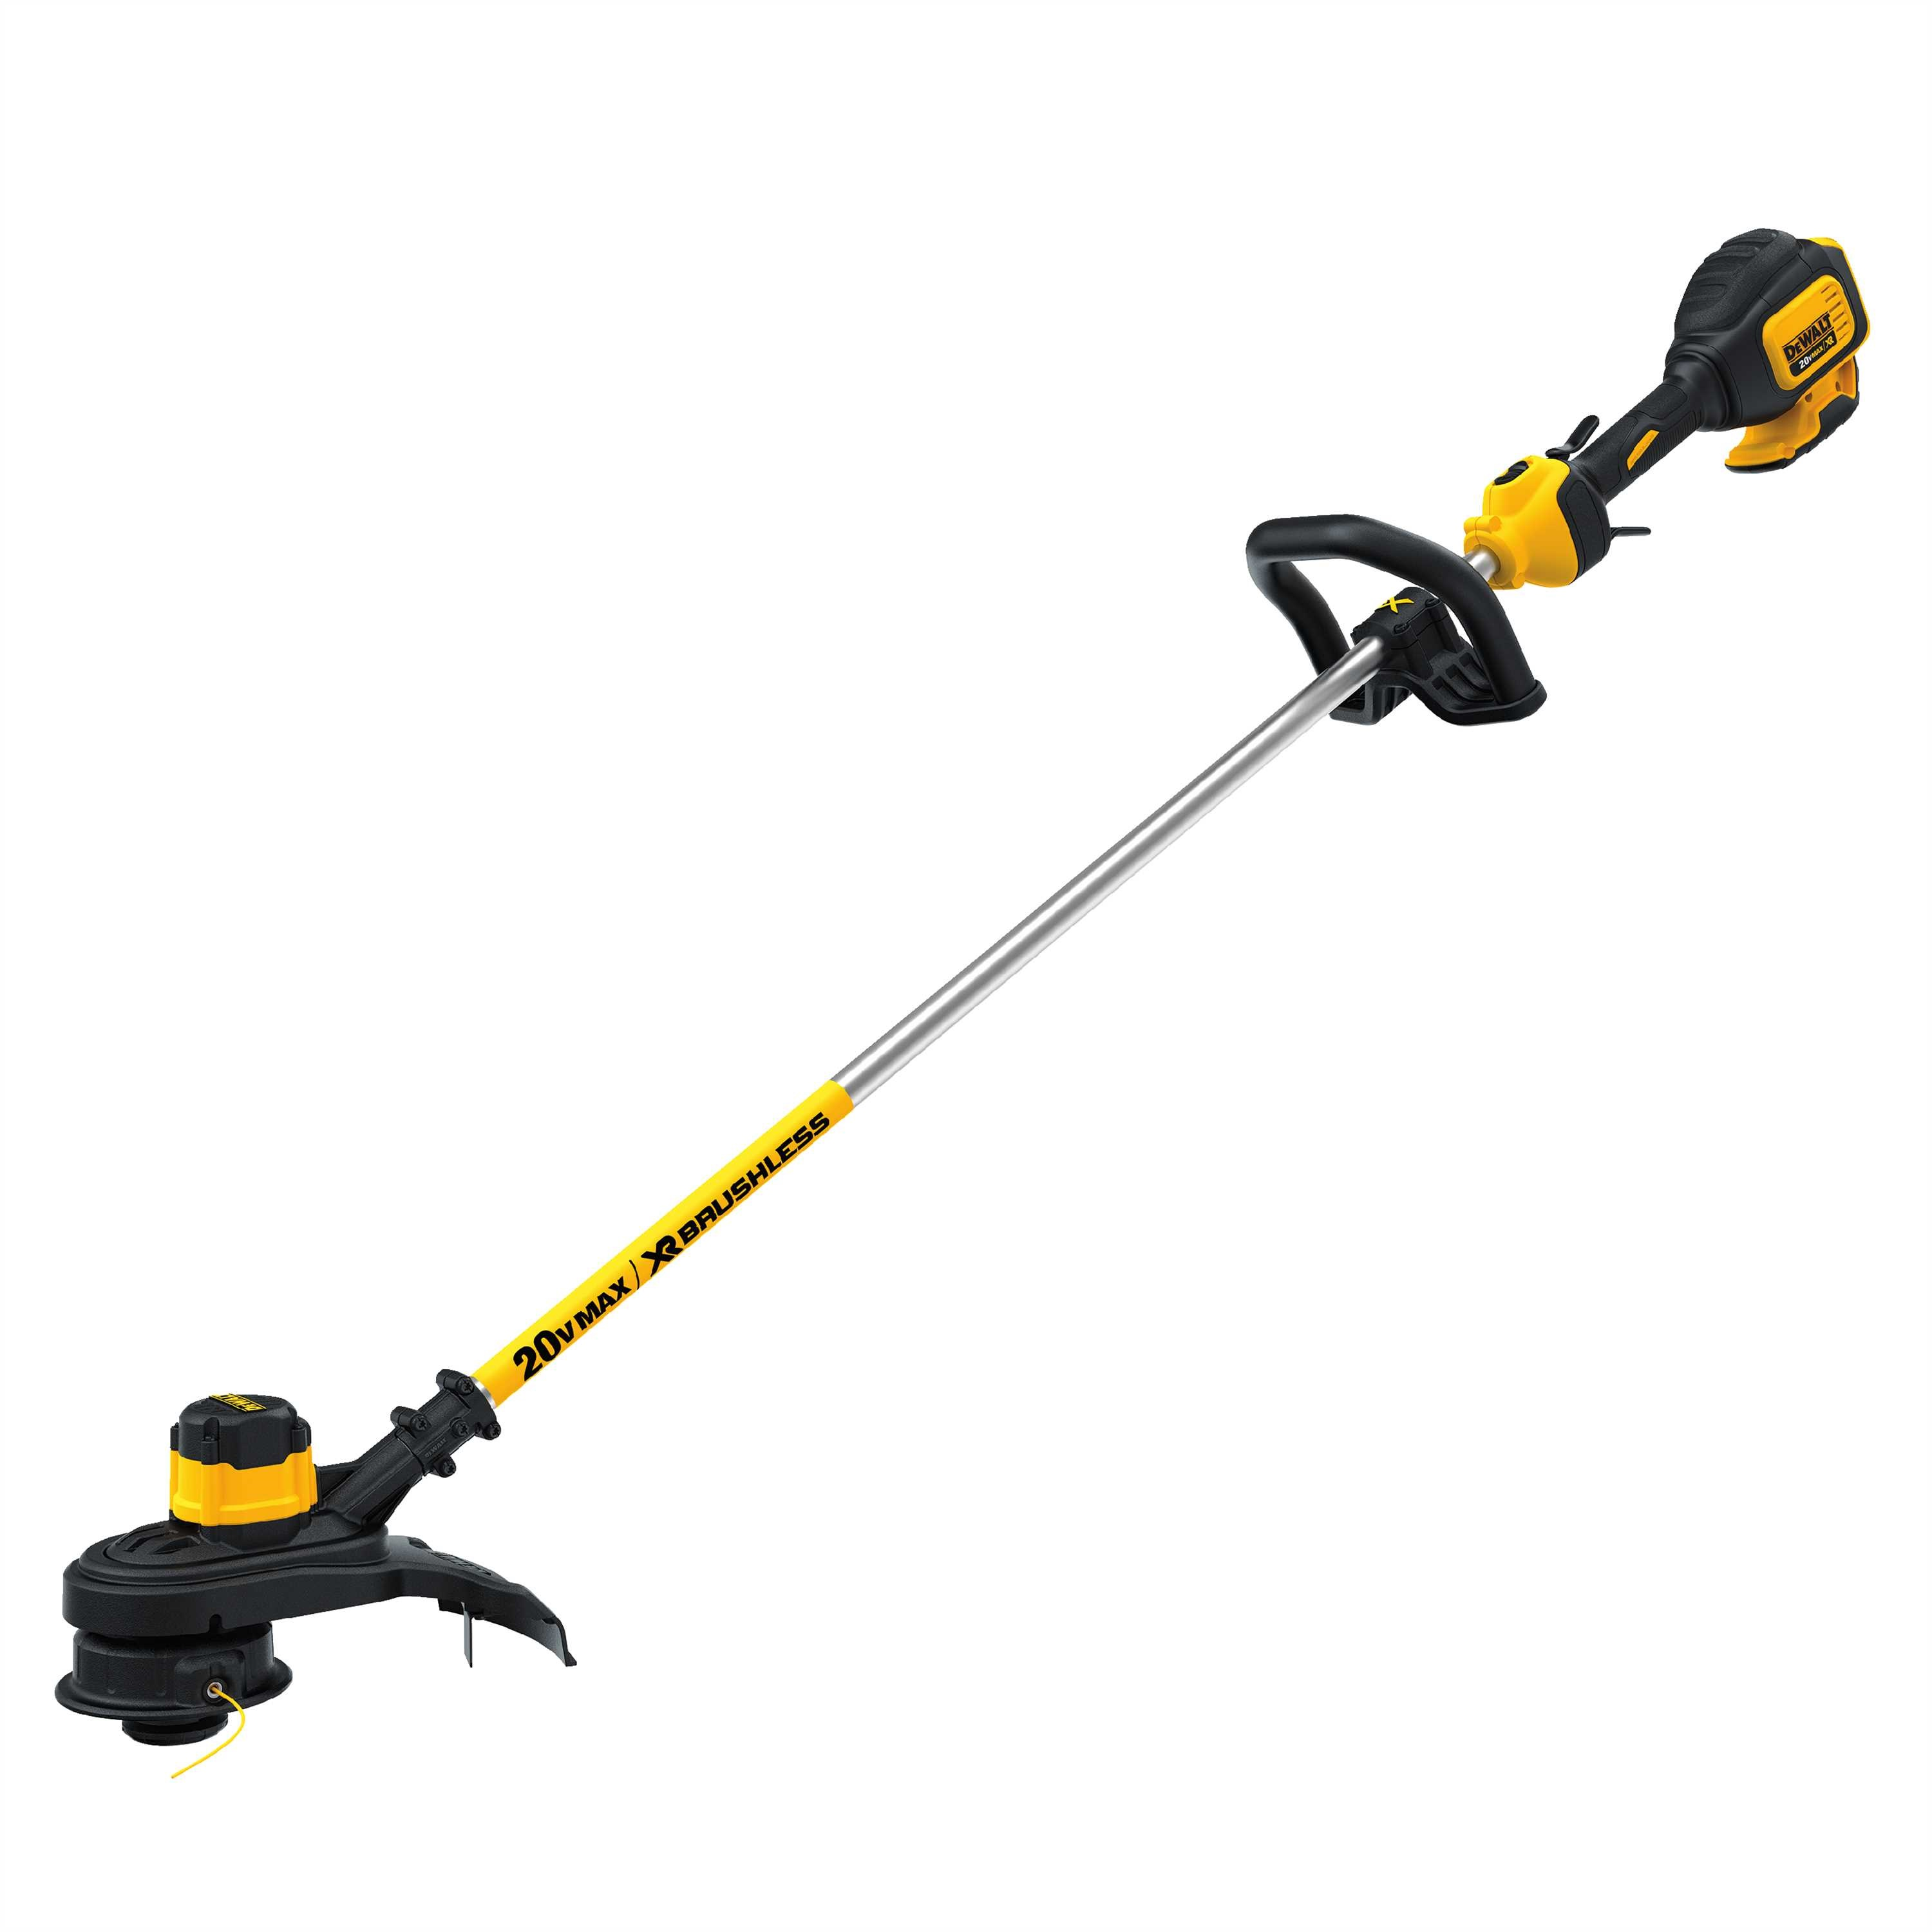 DWLT DCST920B 20V STRING TRIMMER BARE